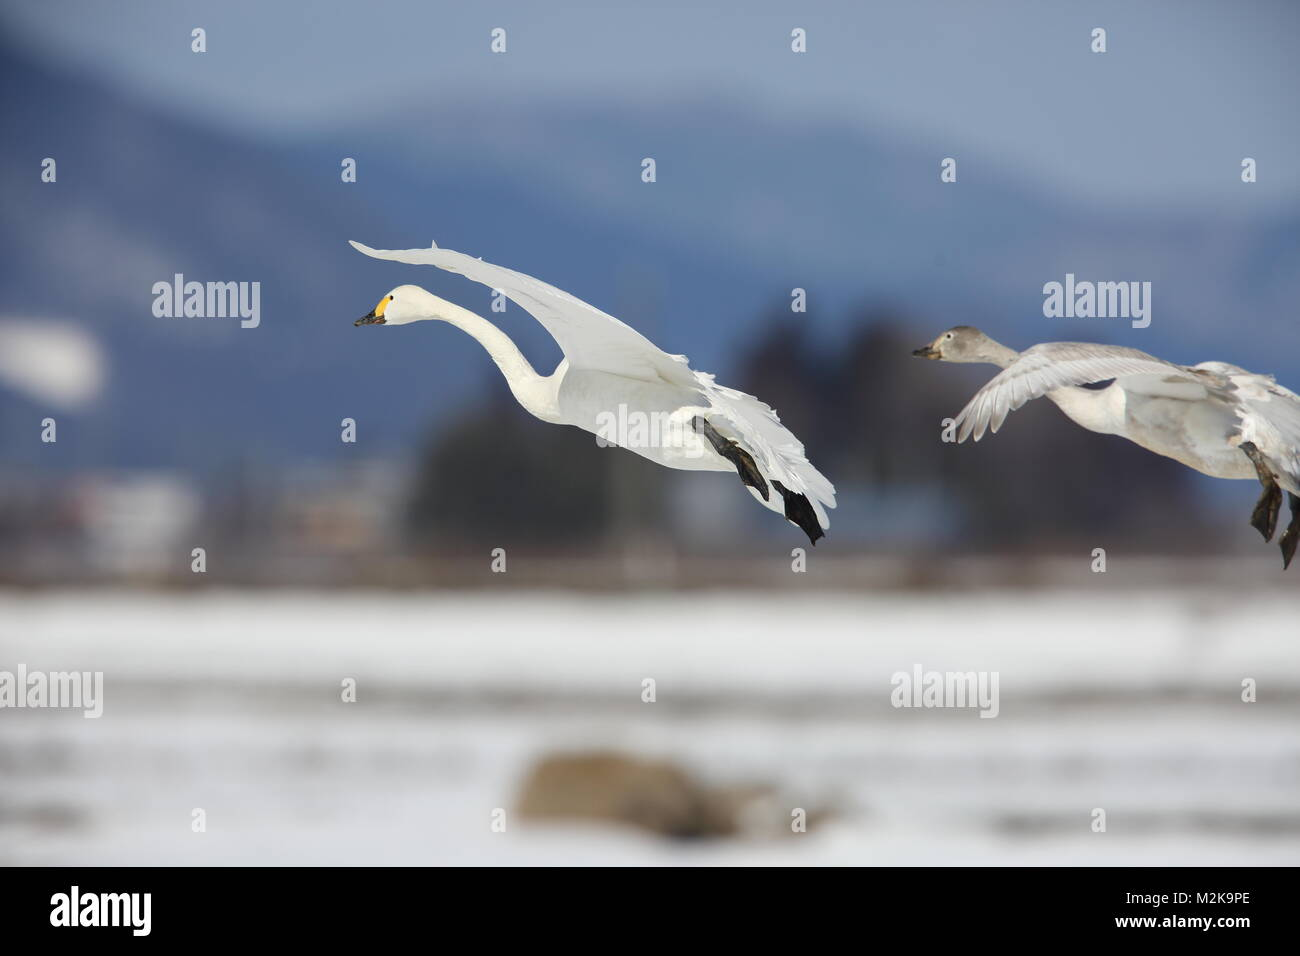 Tundra swan (Cygnus columbianus) in Japan Stock Photo